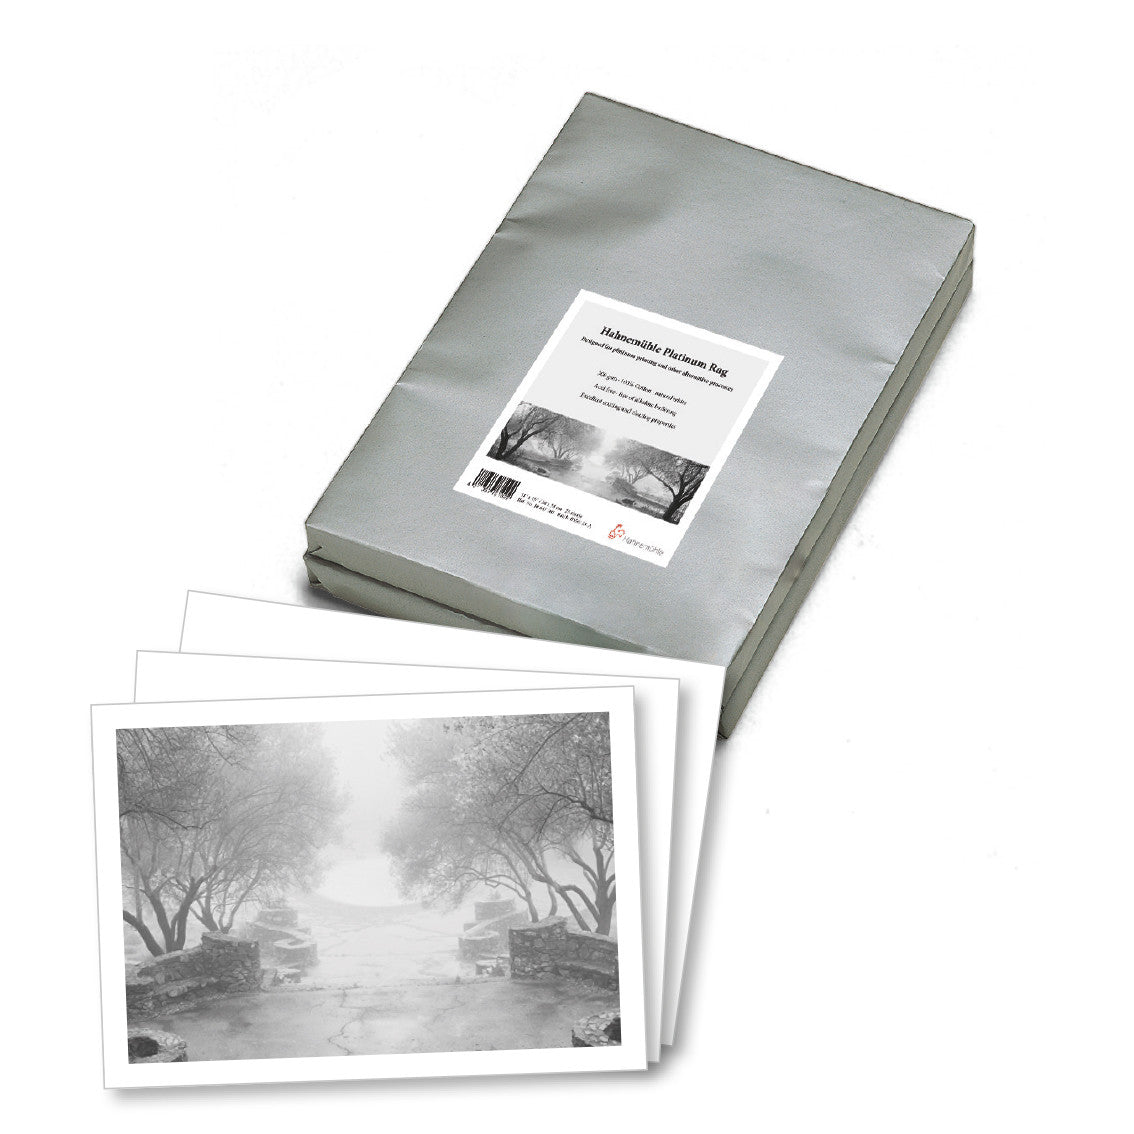 "Hahnemuhle Platinum Rag 300gsm 20""x24"", 25 sheets  (10647101) - Print-Scan-Present - Hahnemuhle - Helix Camera"